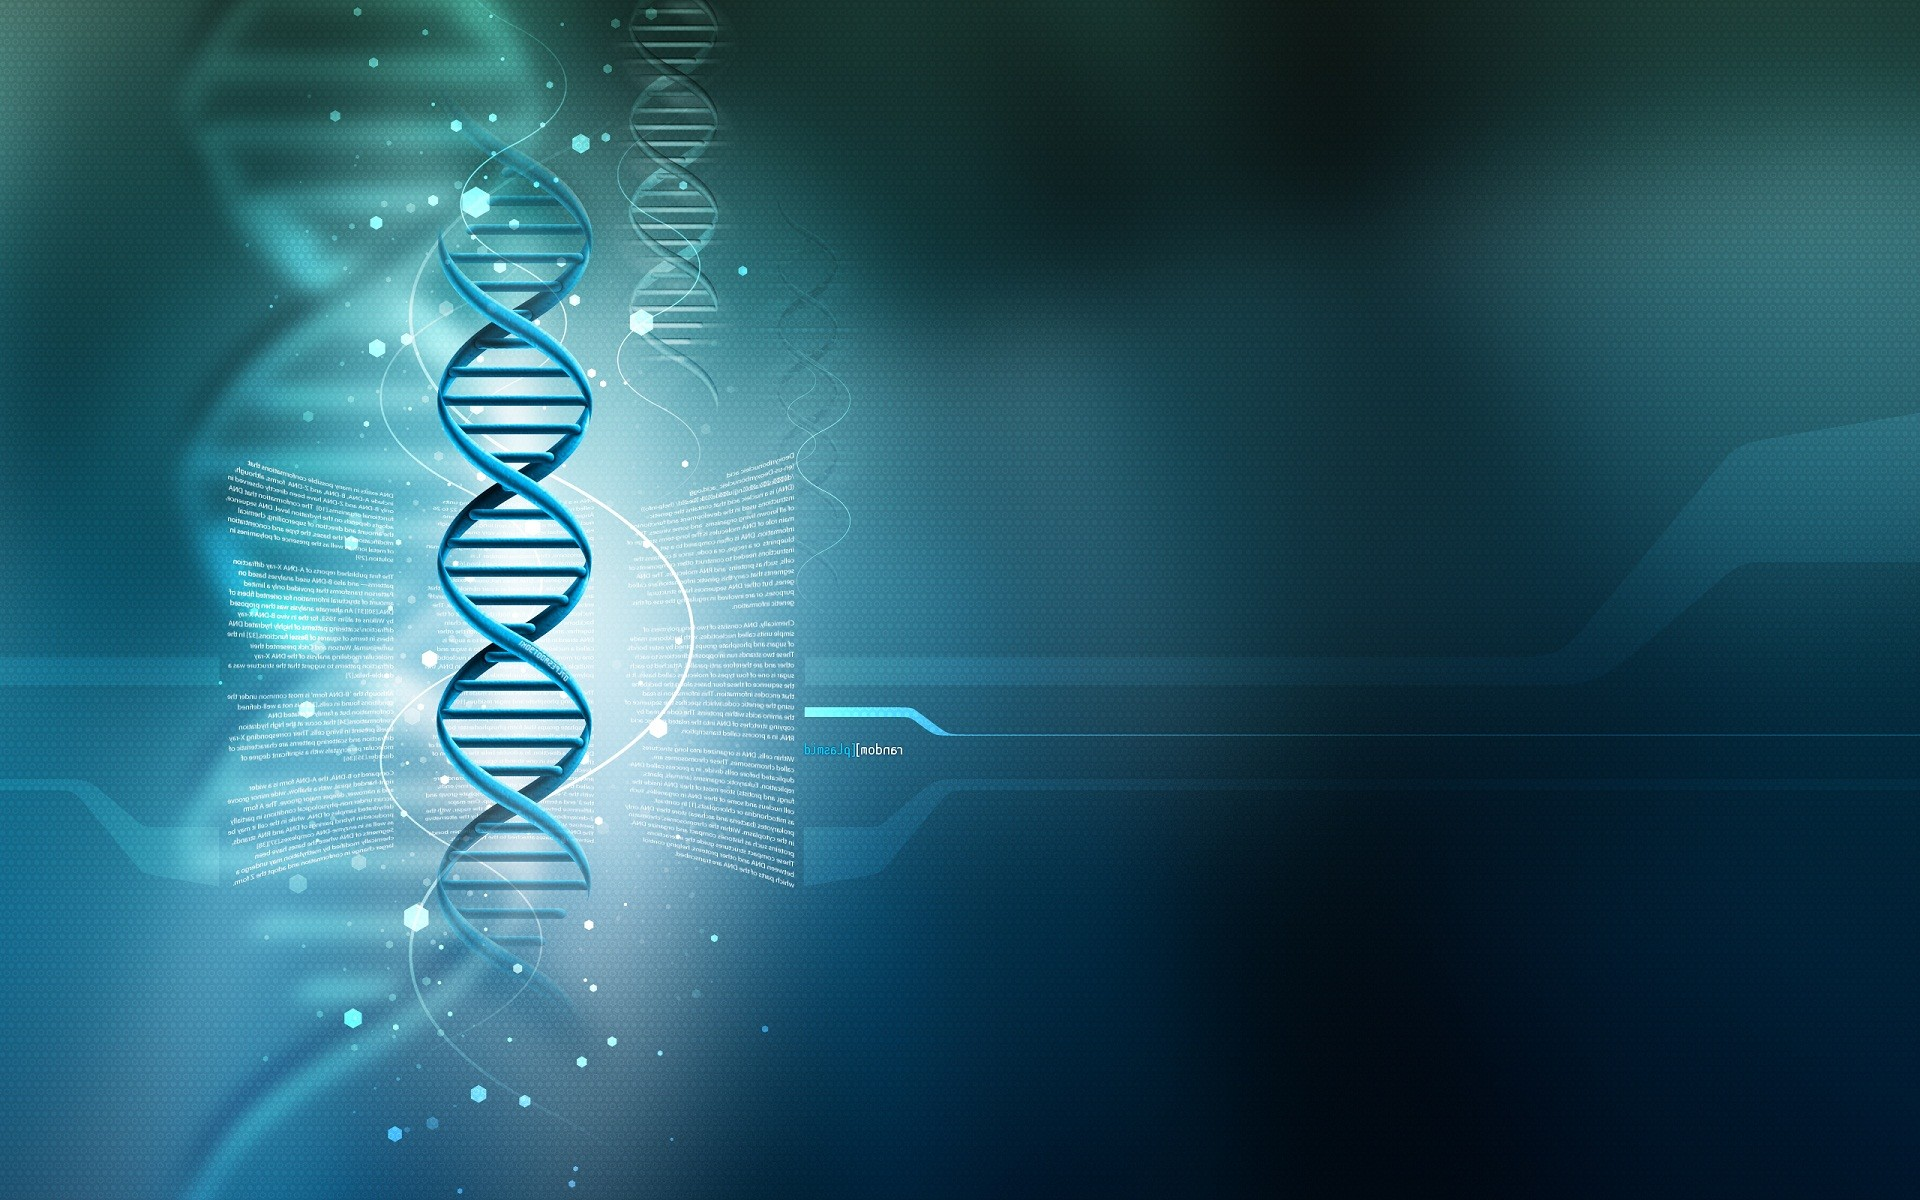 Hd dna wallpaper 10823917